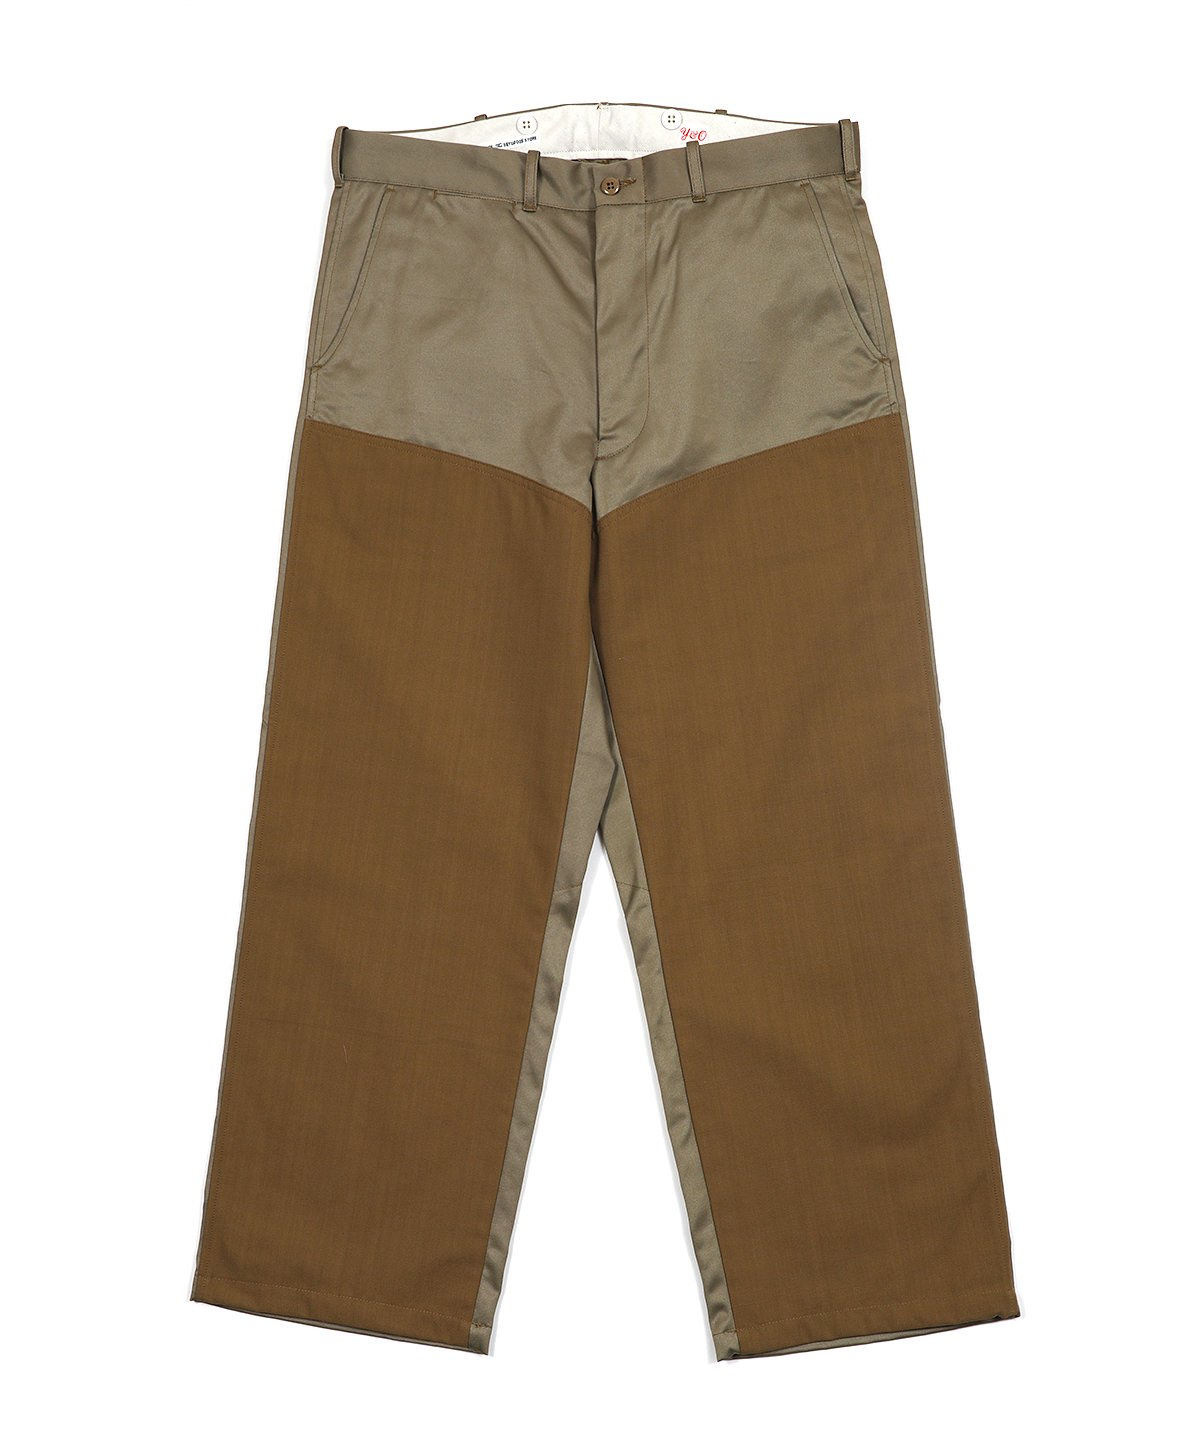 YOUNG'S BEST CHINOS